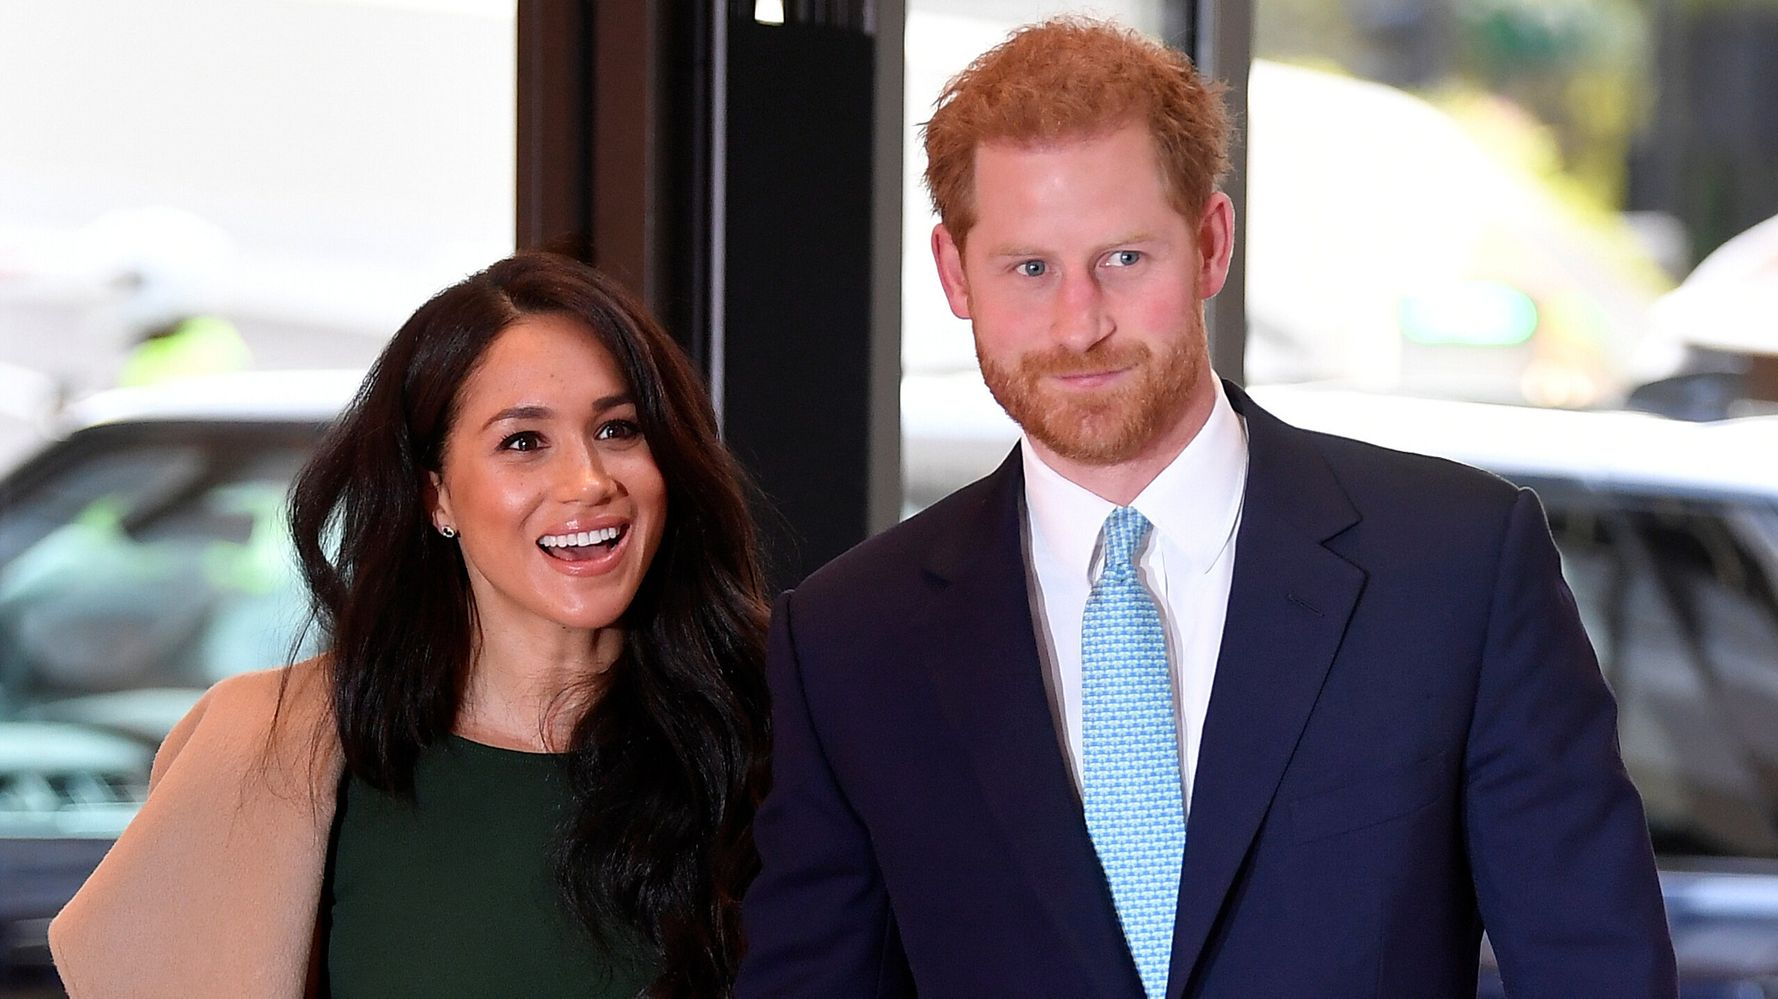 Twitter Takes Off Over Prince Harry And Meghan Markle Giving Up 'Highness' Titles